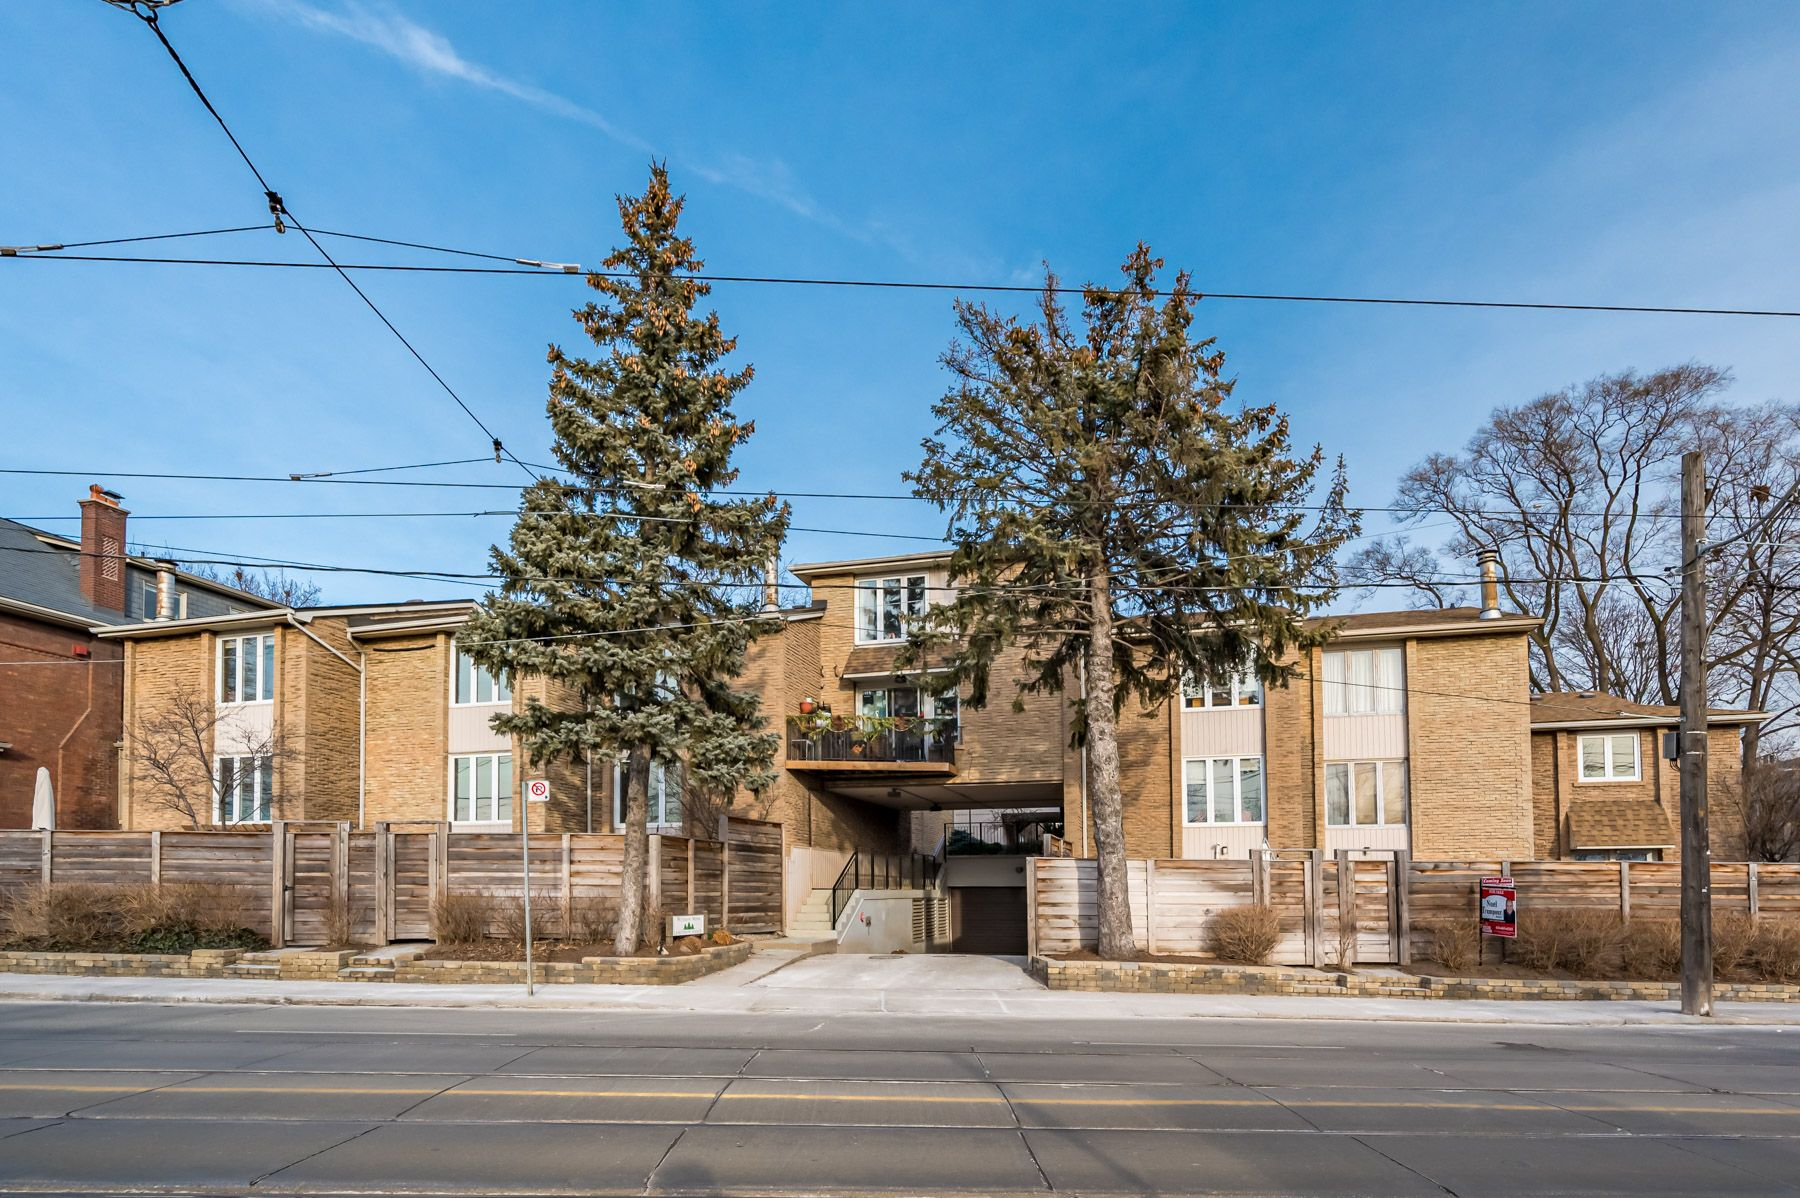 2 Withrow Avenue Townhomes at 2 Withrow Ave. This condo townhouse is located in  East End, Toronto